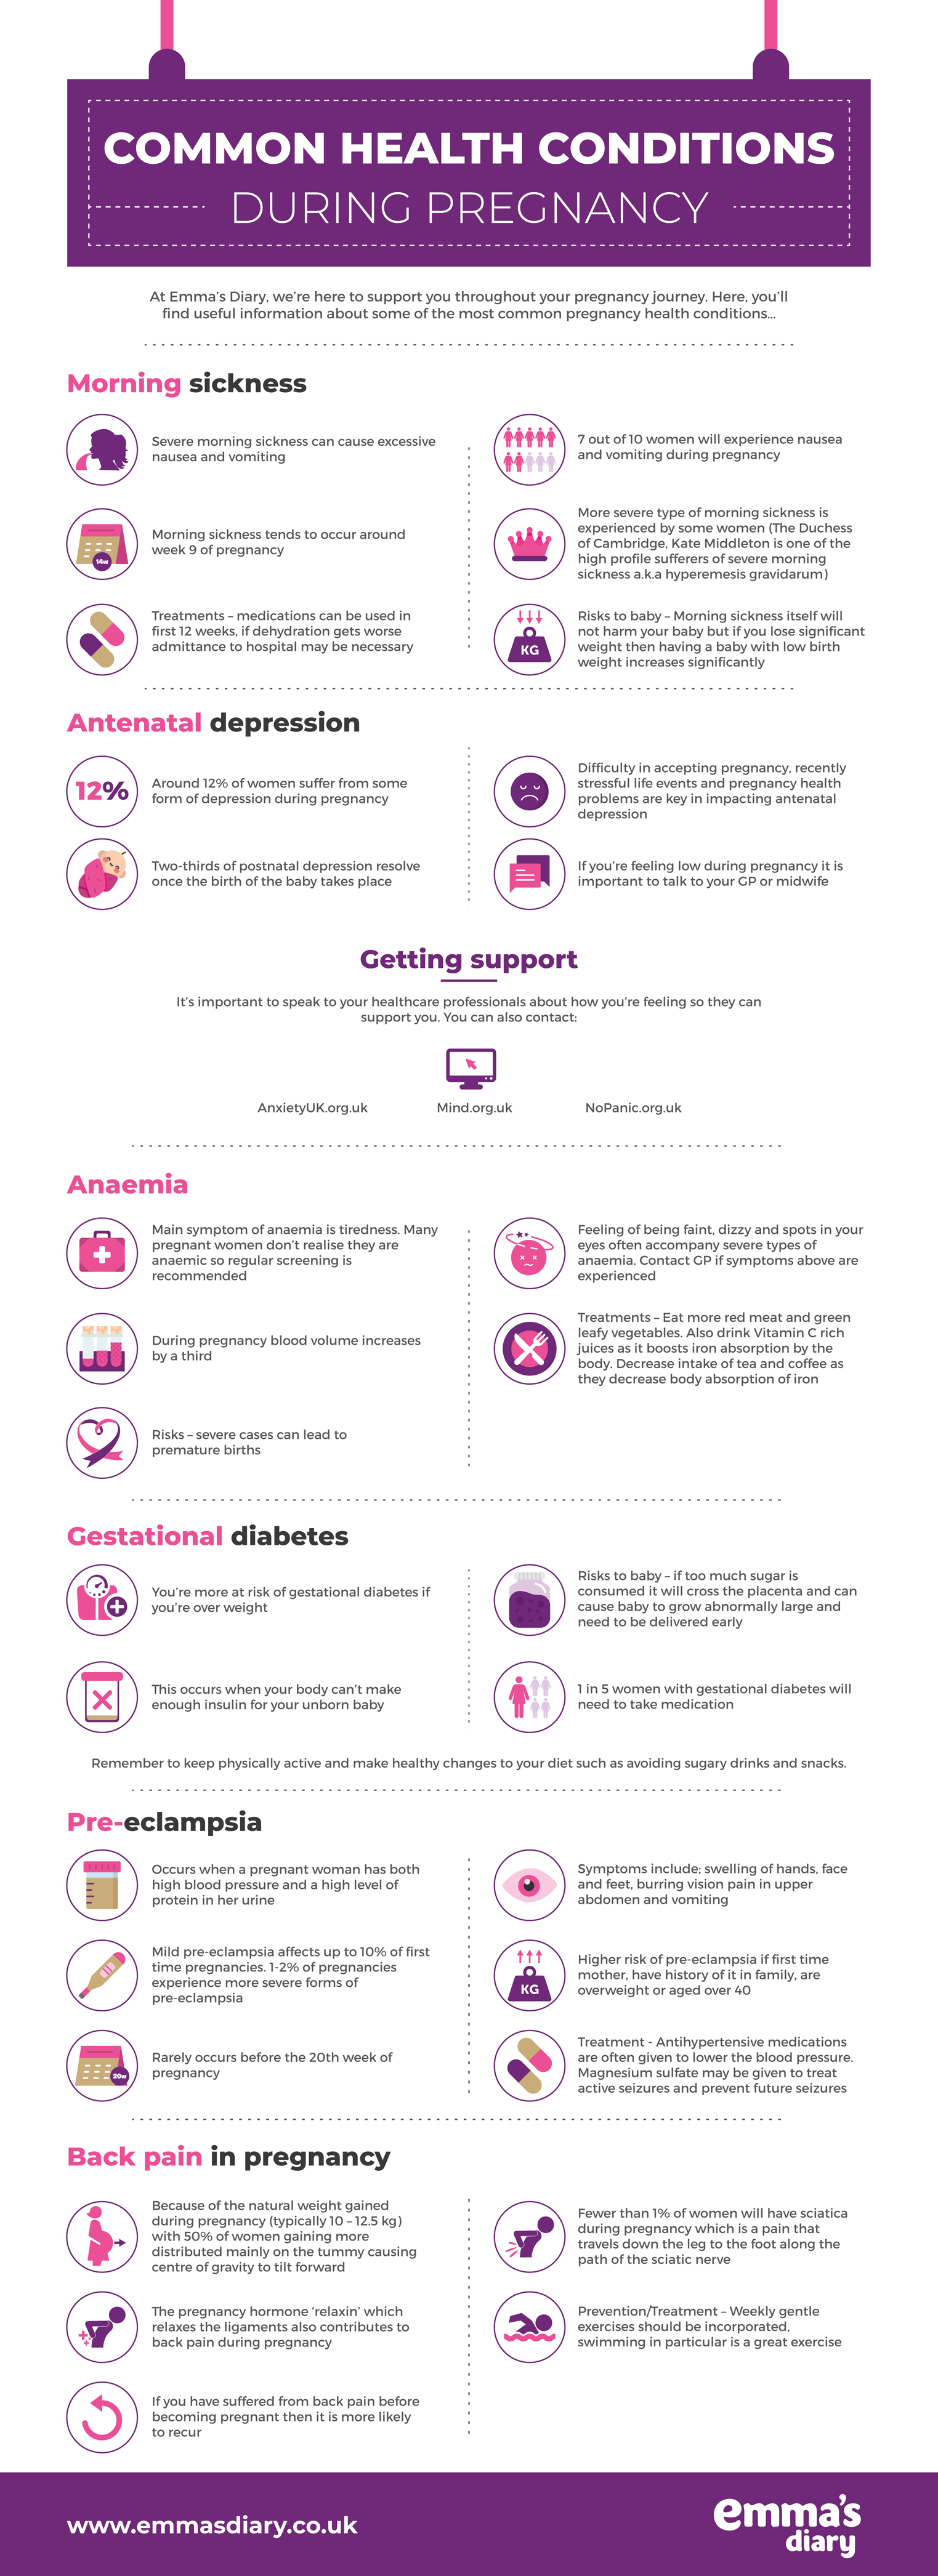 emma's-diary-common-pregnancy-conditions-infographic-plaza